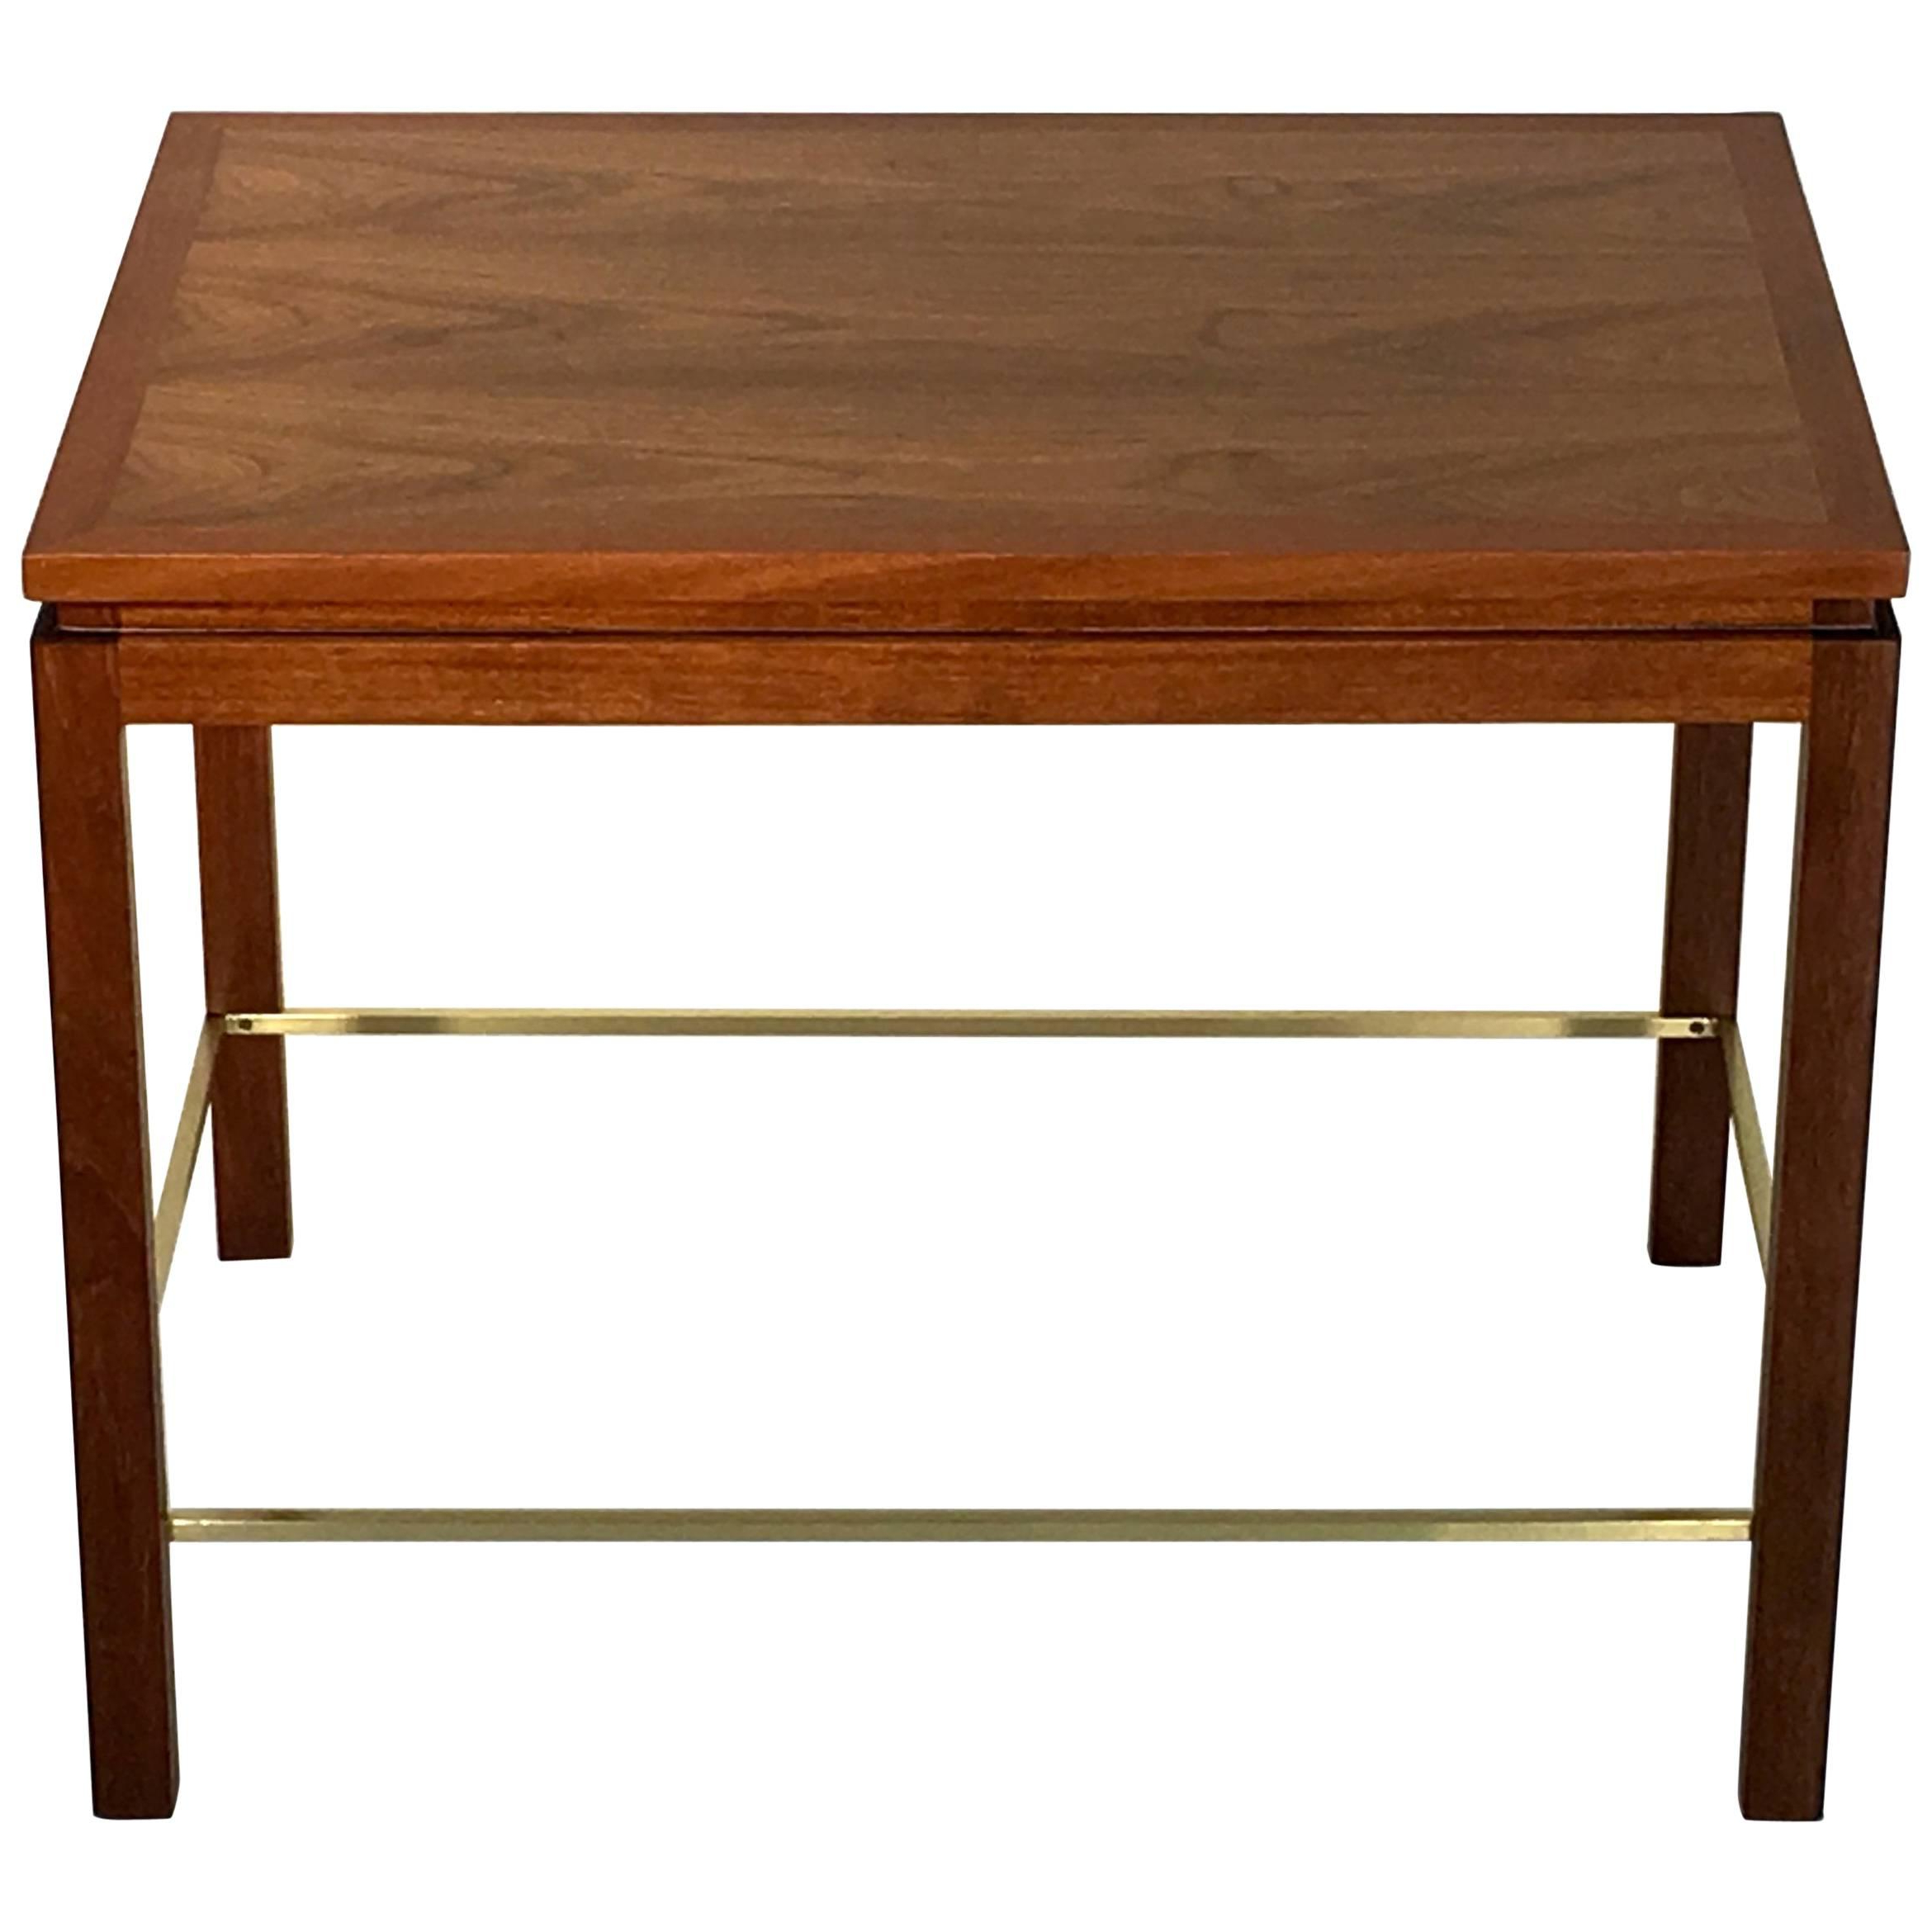 Dunbar Furniture Console Tables – 25 For Sale At 1Stdibs Within Oak & Brass Stacking Media Console Tables (View 6 of 20)